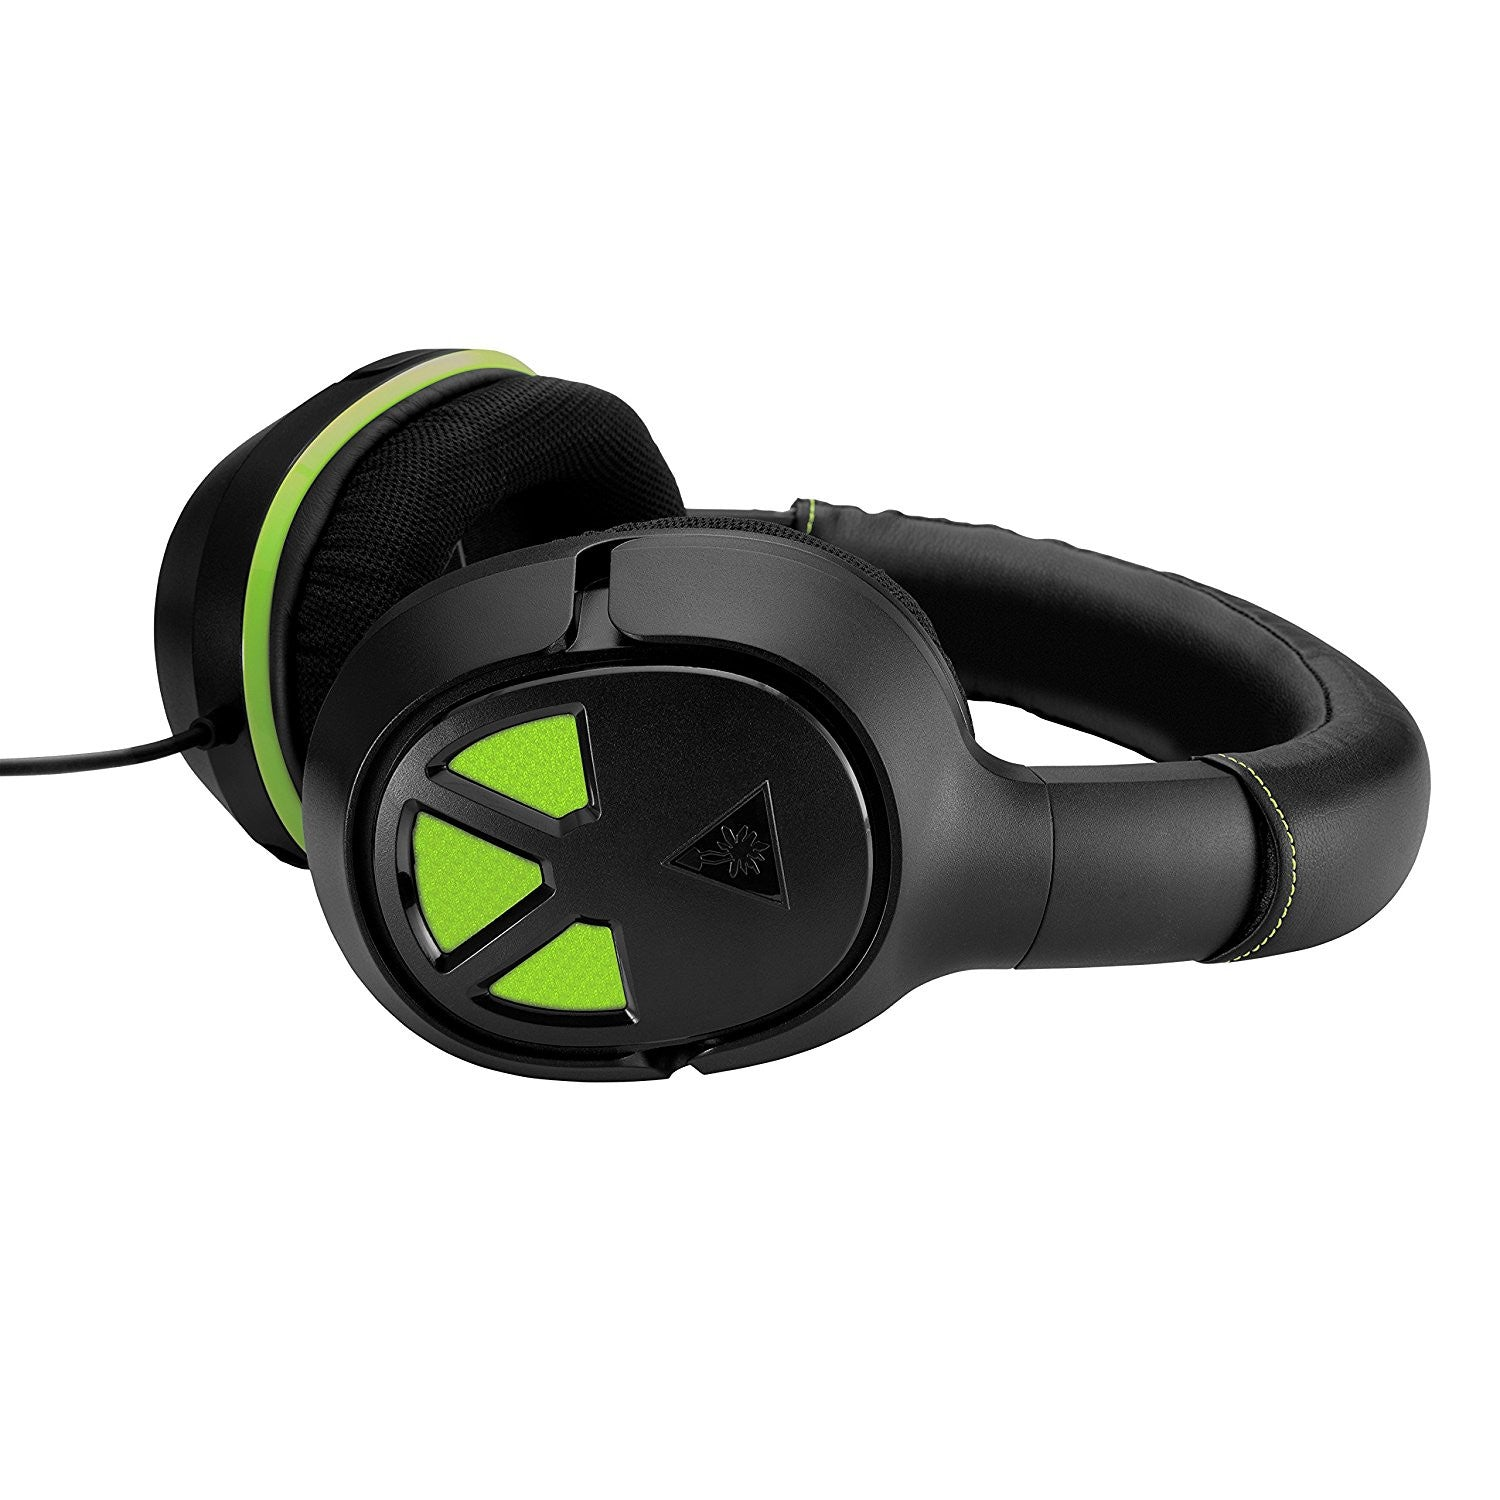 Turtle Beach XO Three Headset for Xbox One and PC